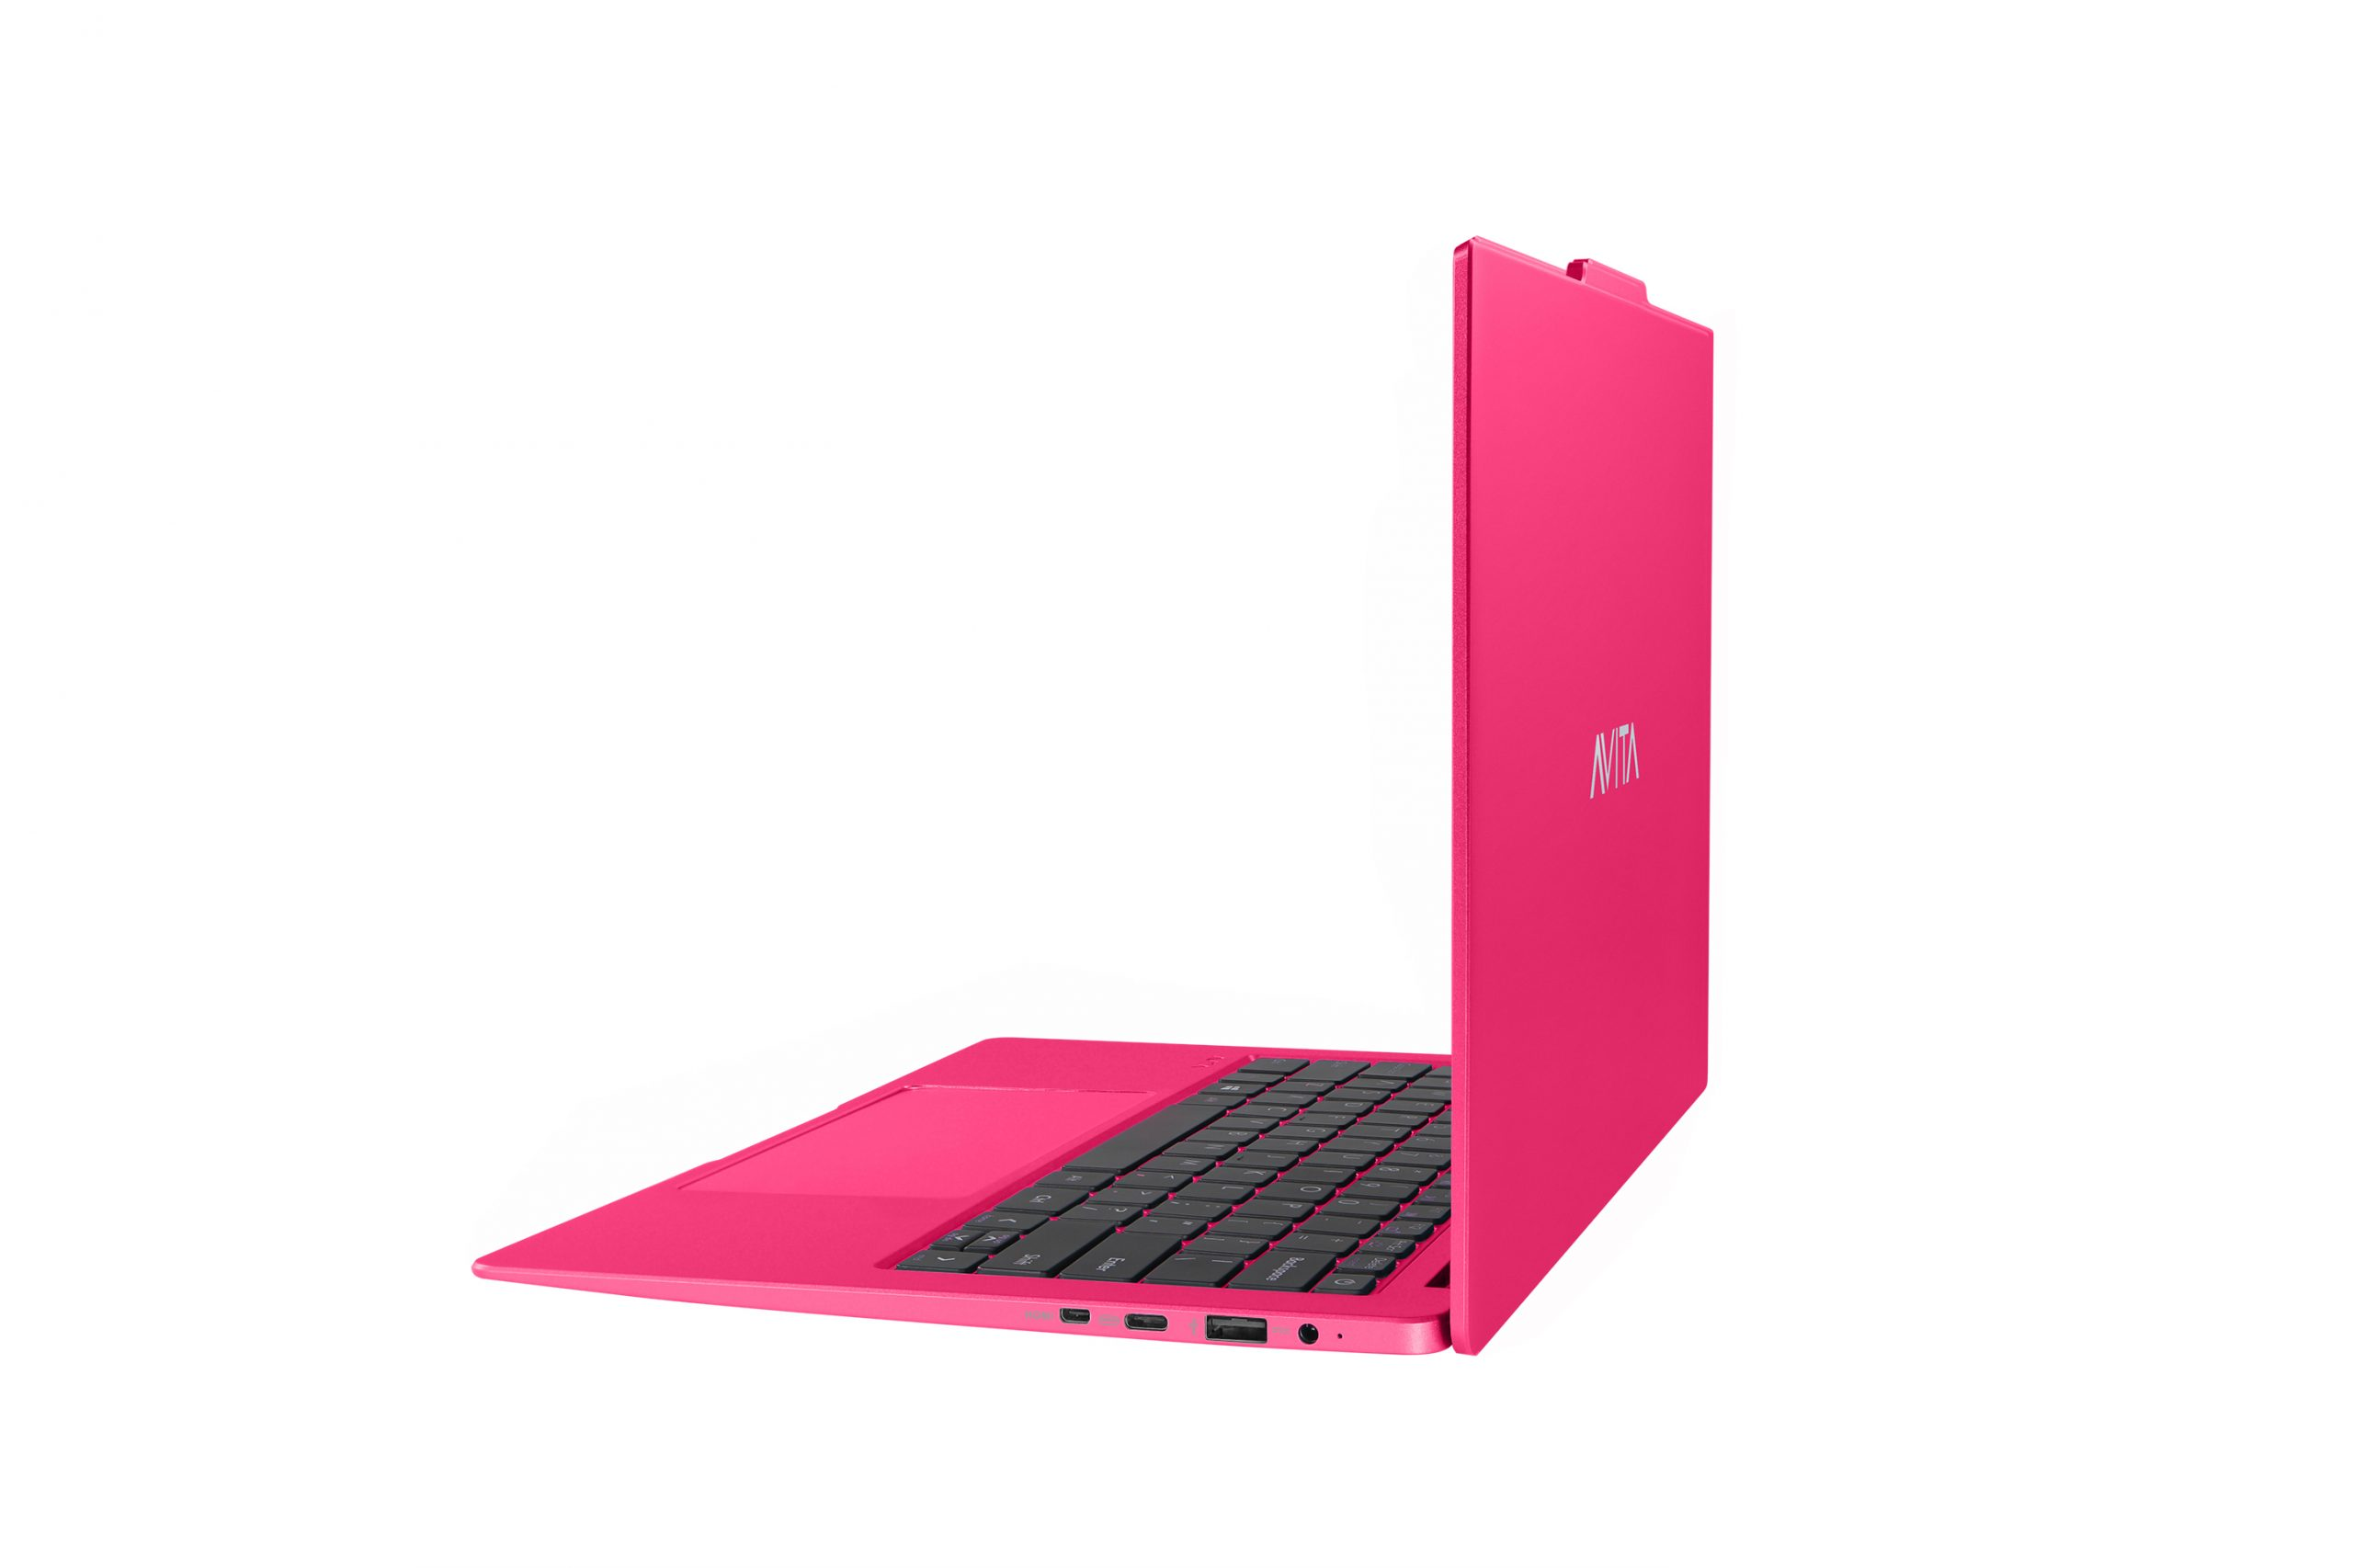 https://t2qwifi.com/wp-content/uploads/2020/07/avita_laptop_2020_angle4_0027_urban-ruby-scaled.jpg